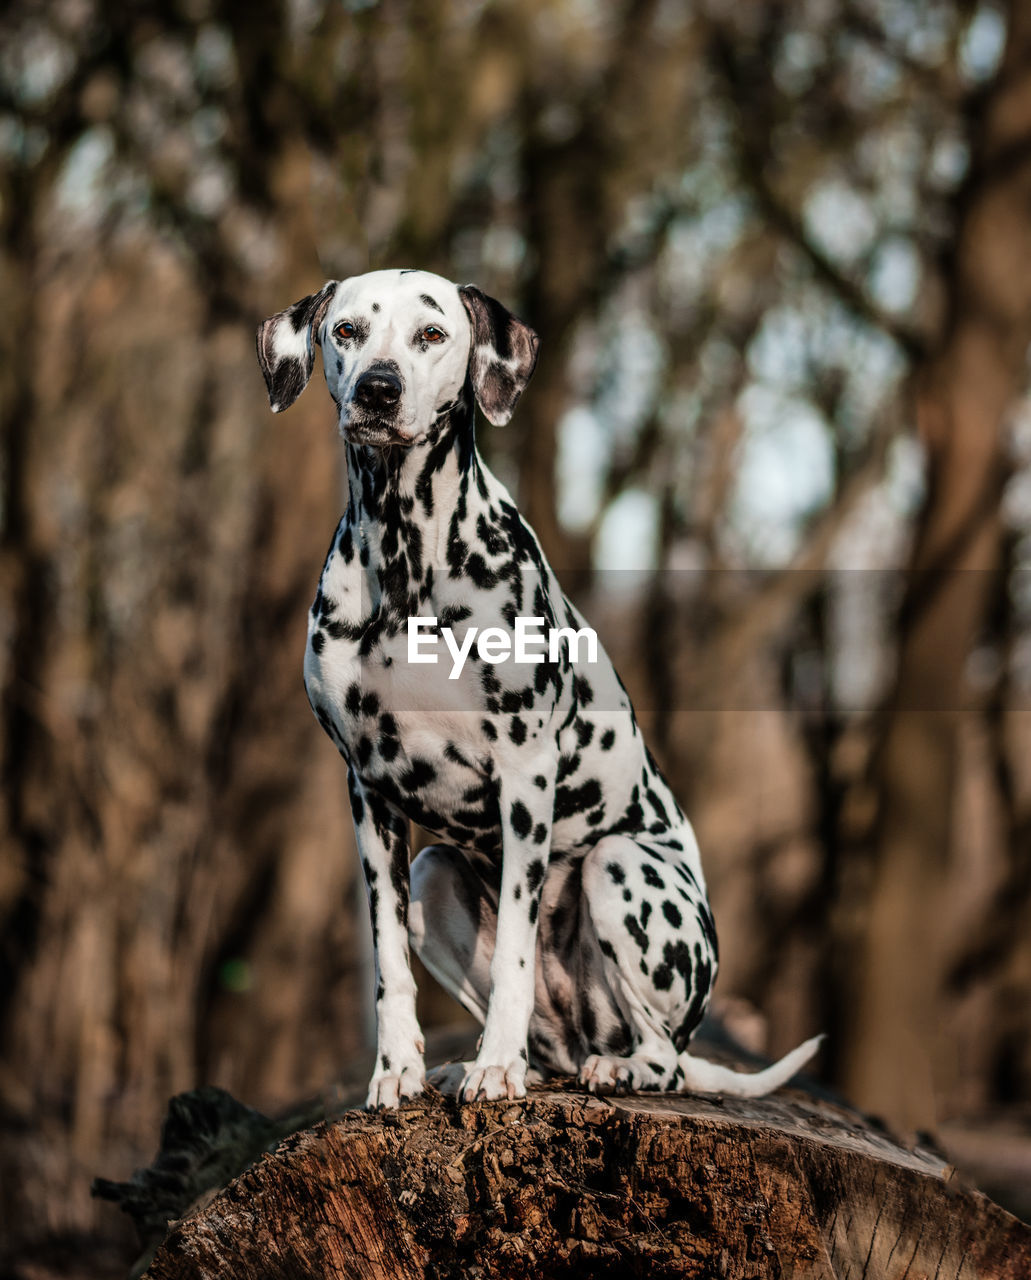 one animal, animal themes, animal, dog, dalmatian dog, mammal, canine, tree, focus on foreground, vertebrate, pets, domestic animals, spotted, domestic, no people, looking, day, nature, plant, outdoors, purebred dog, animal head